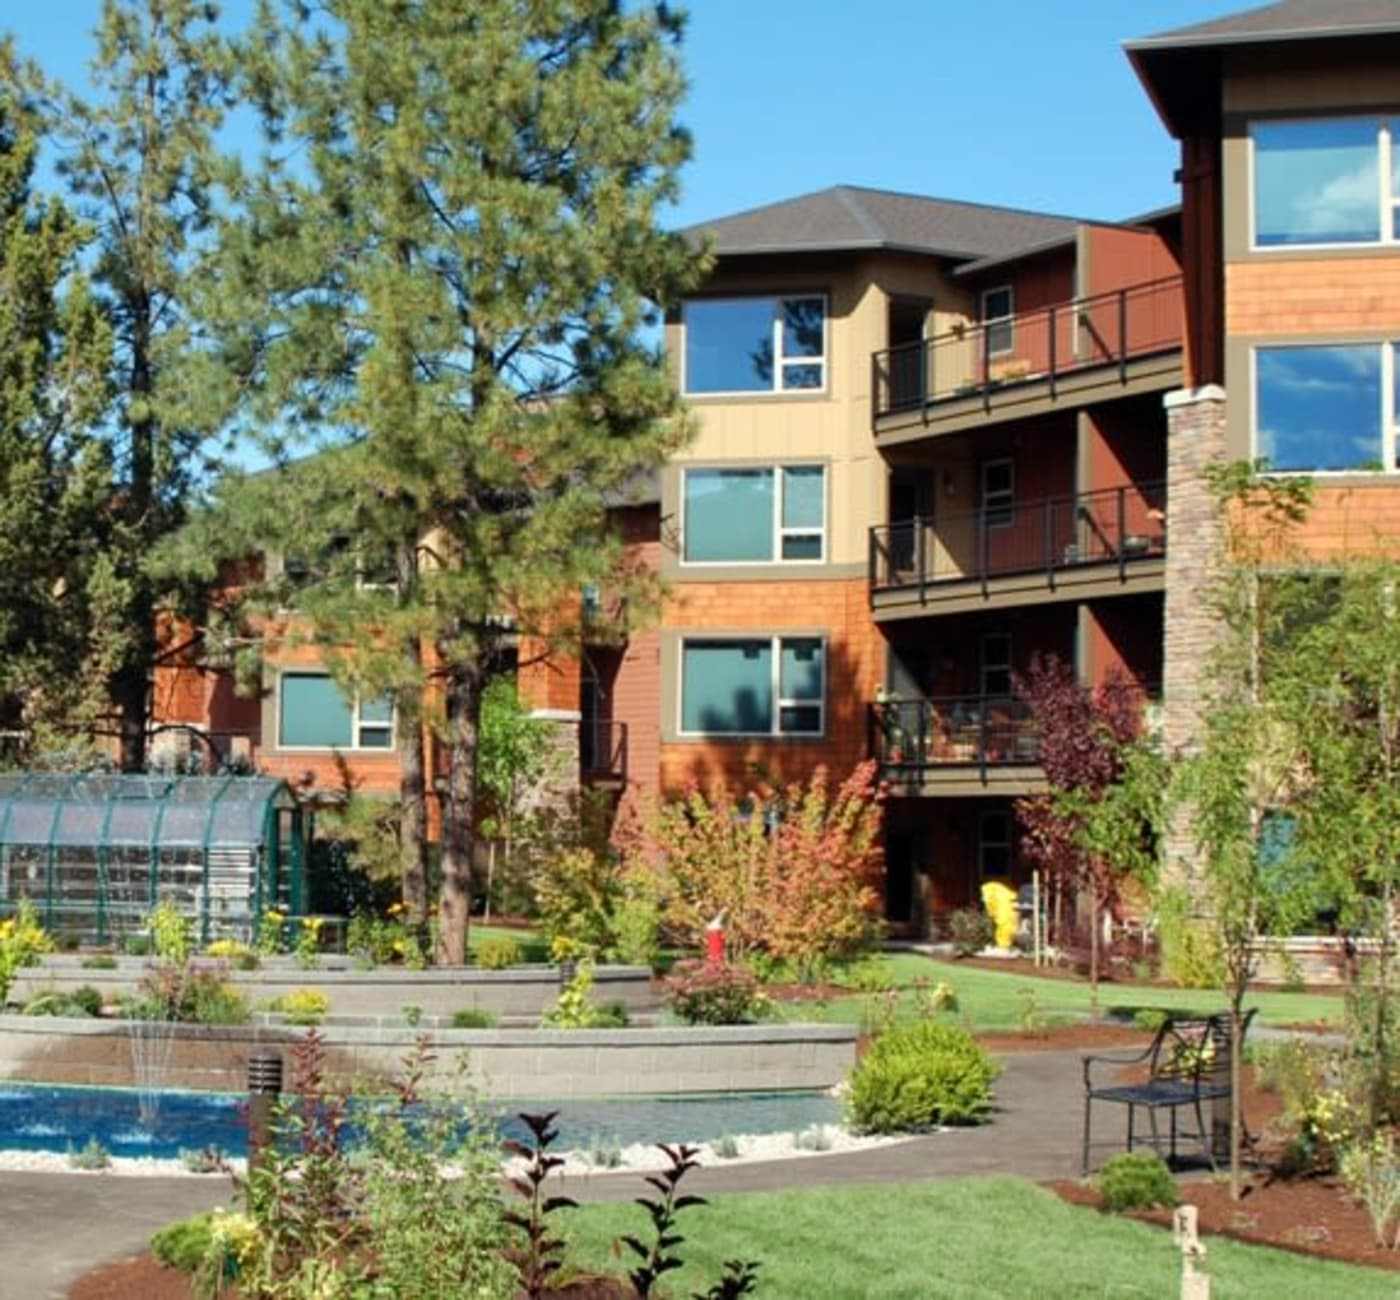 Building exterior at Touchmark at Mount Bachelor Village in Bend, Oregon